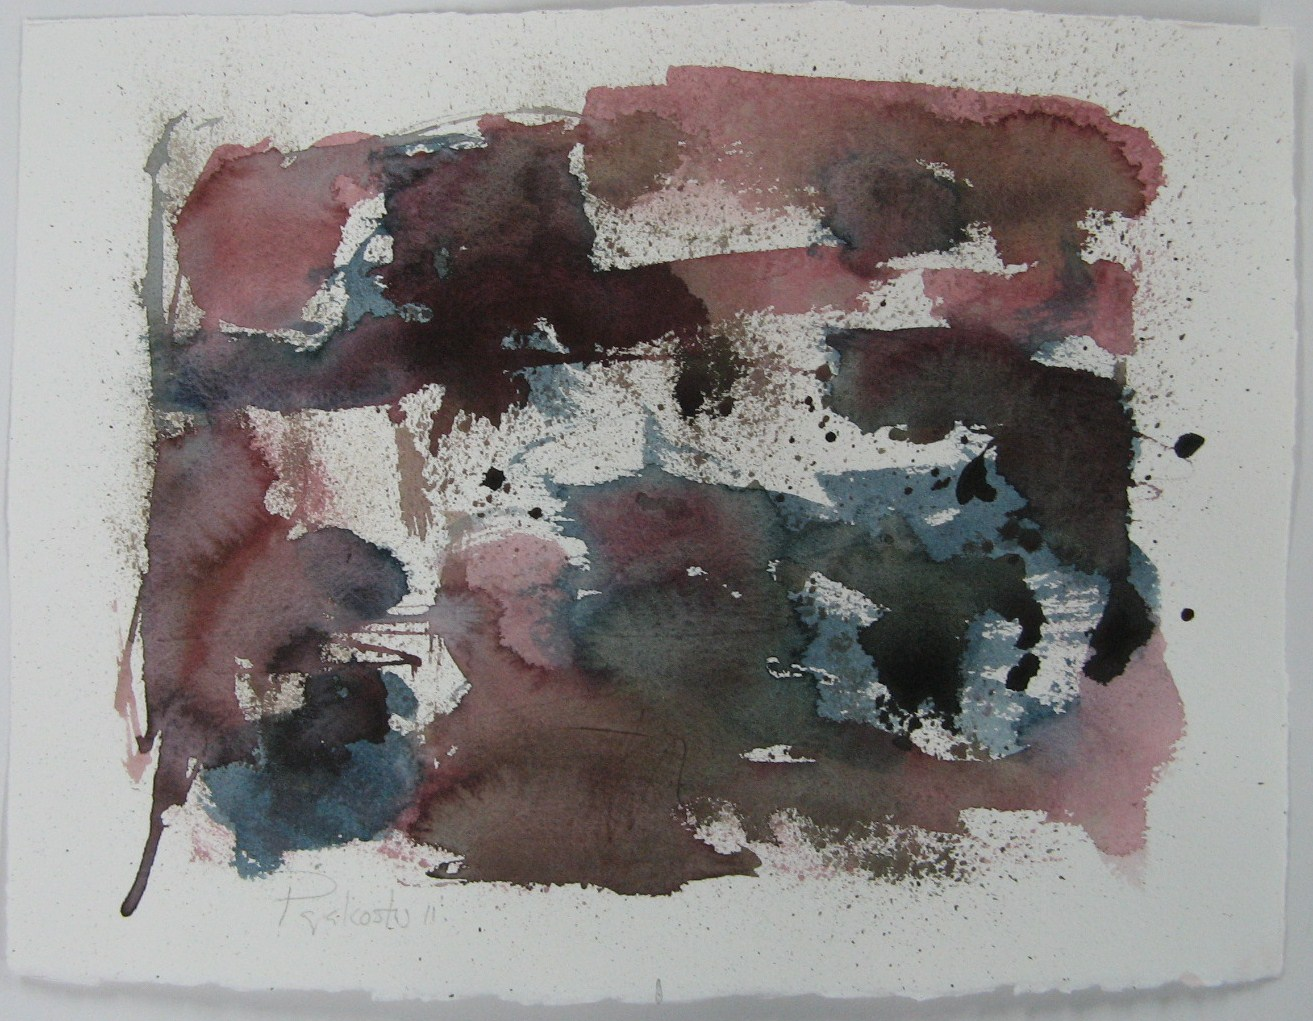 untitled 2011, watercolour on paper 27.94 x 38.10cm (11 x 15in ) - IMG_1942.JPG